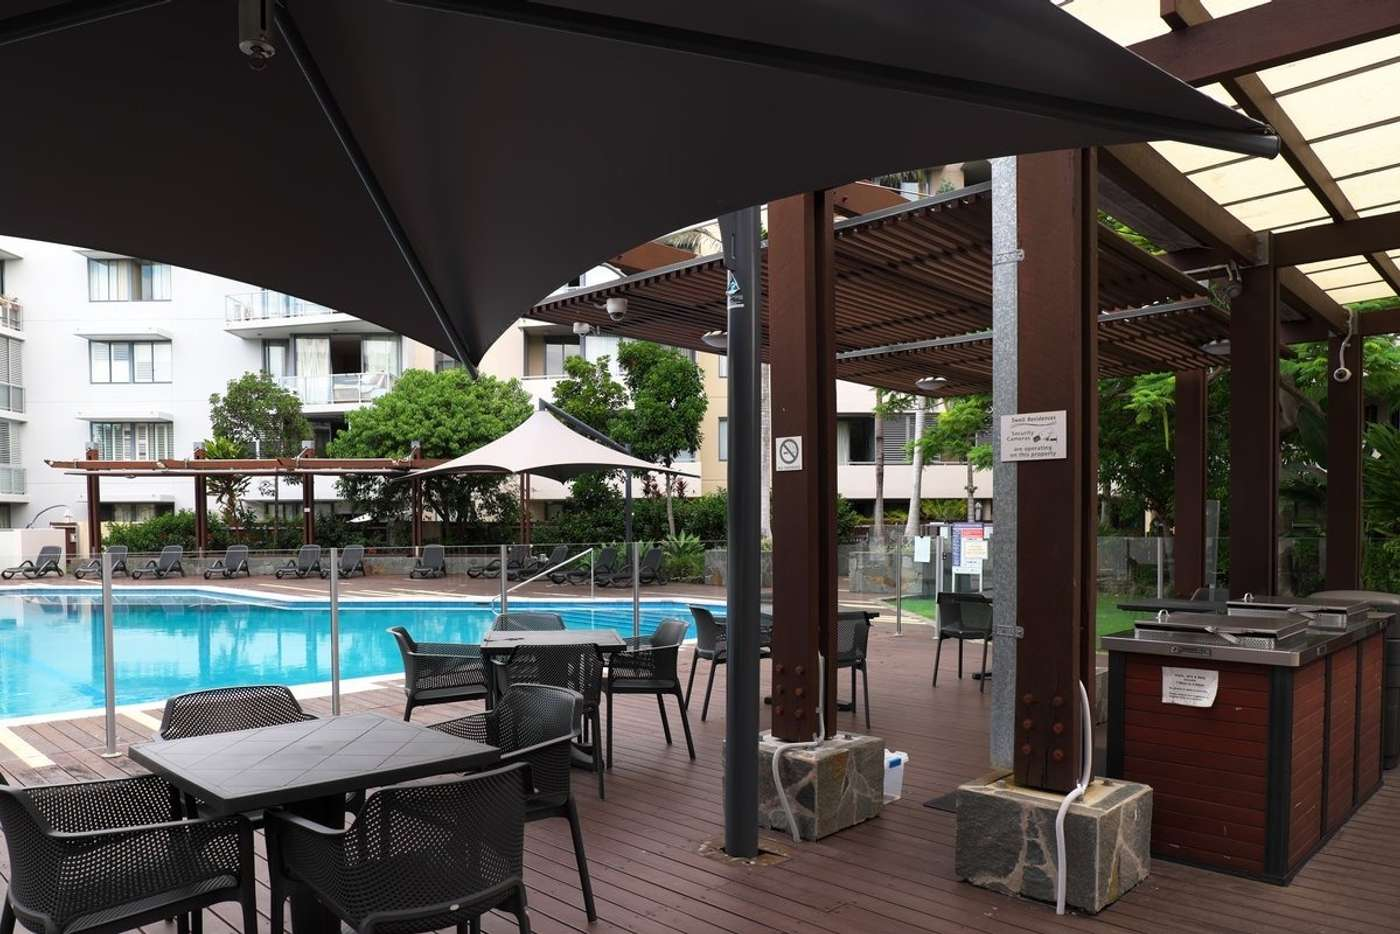 Main view of Homely apartment listing, 2001/1 Ocean Street, Burleigh Heads QLD 4220